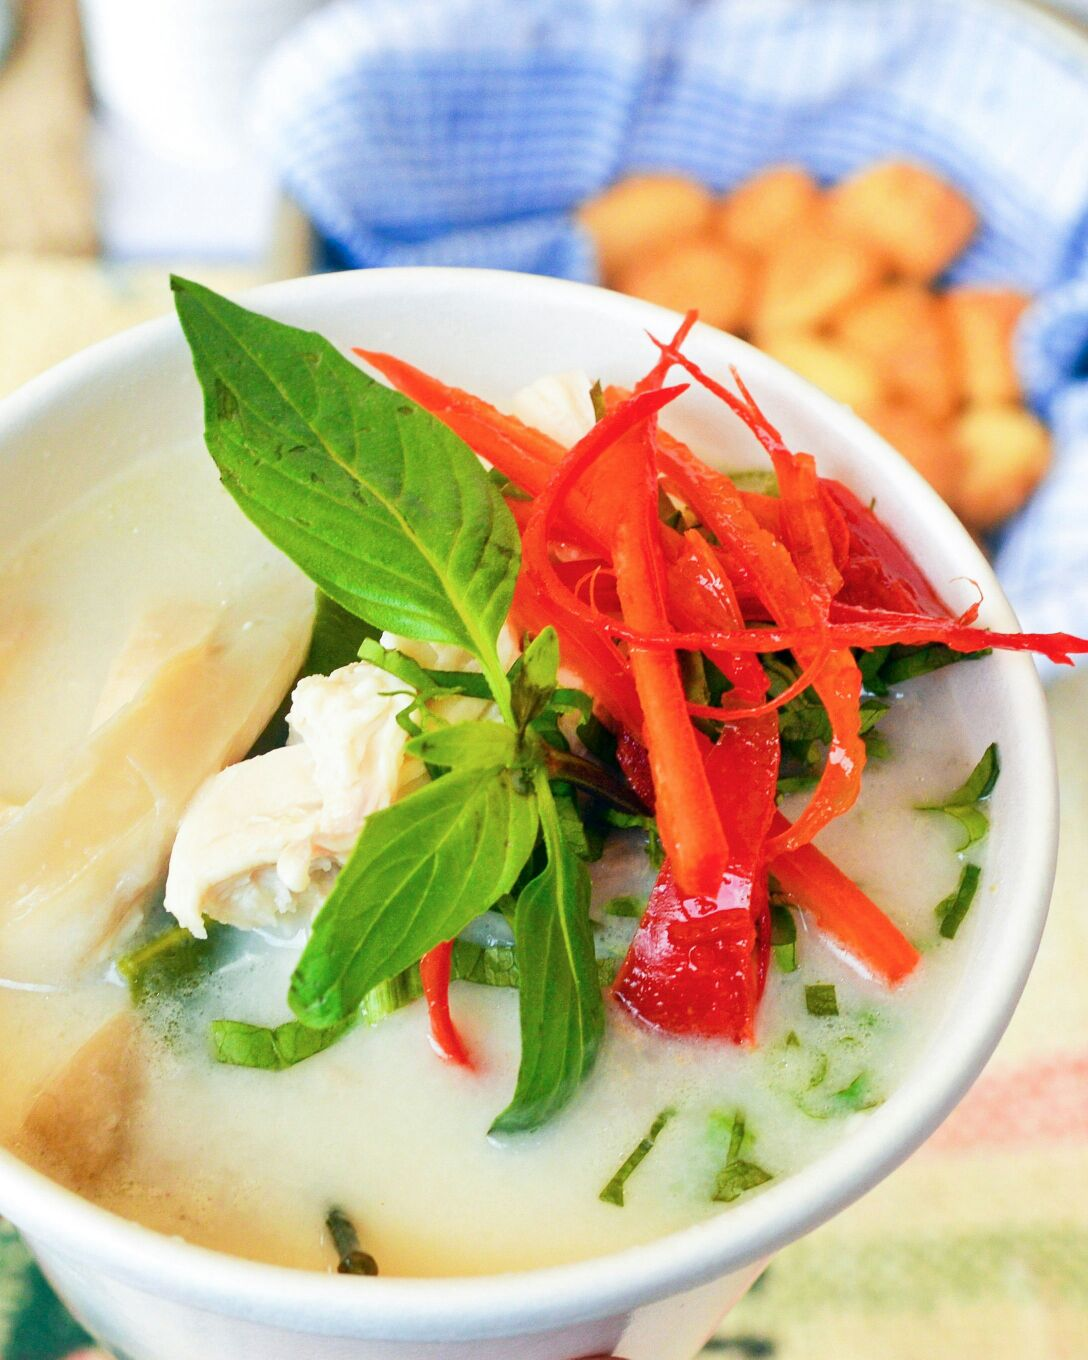 Poached chicken, coconut & galingal soup (photo by Kaleem Hyder)